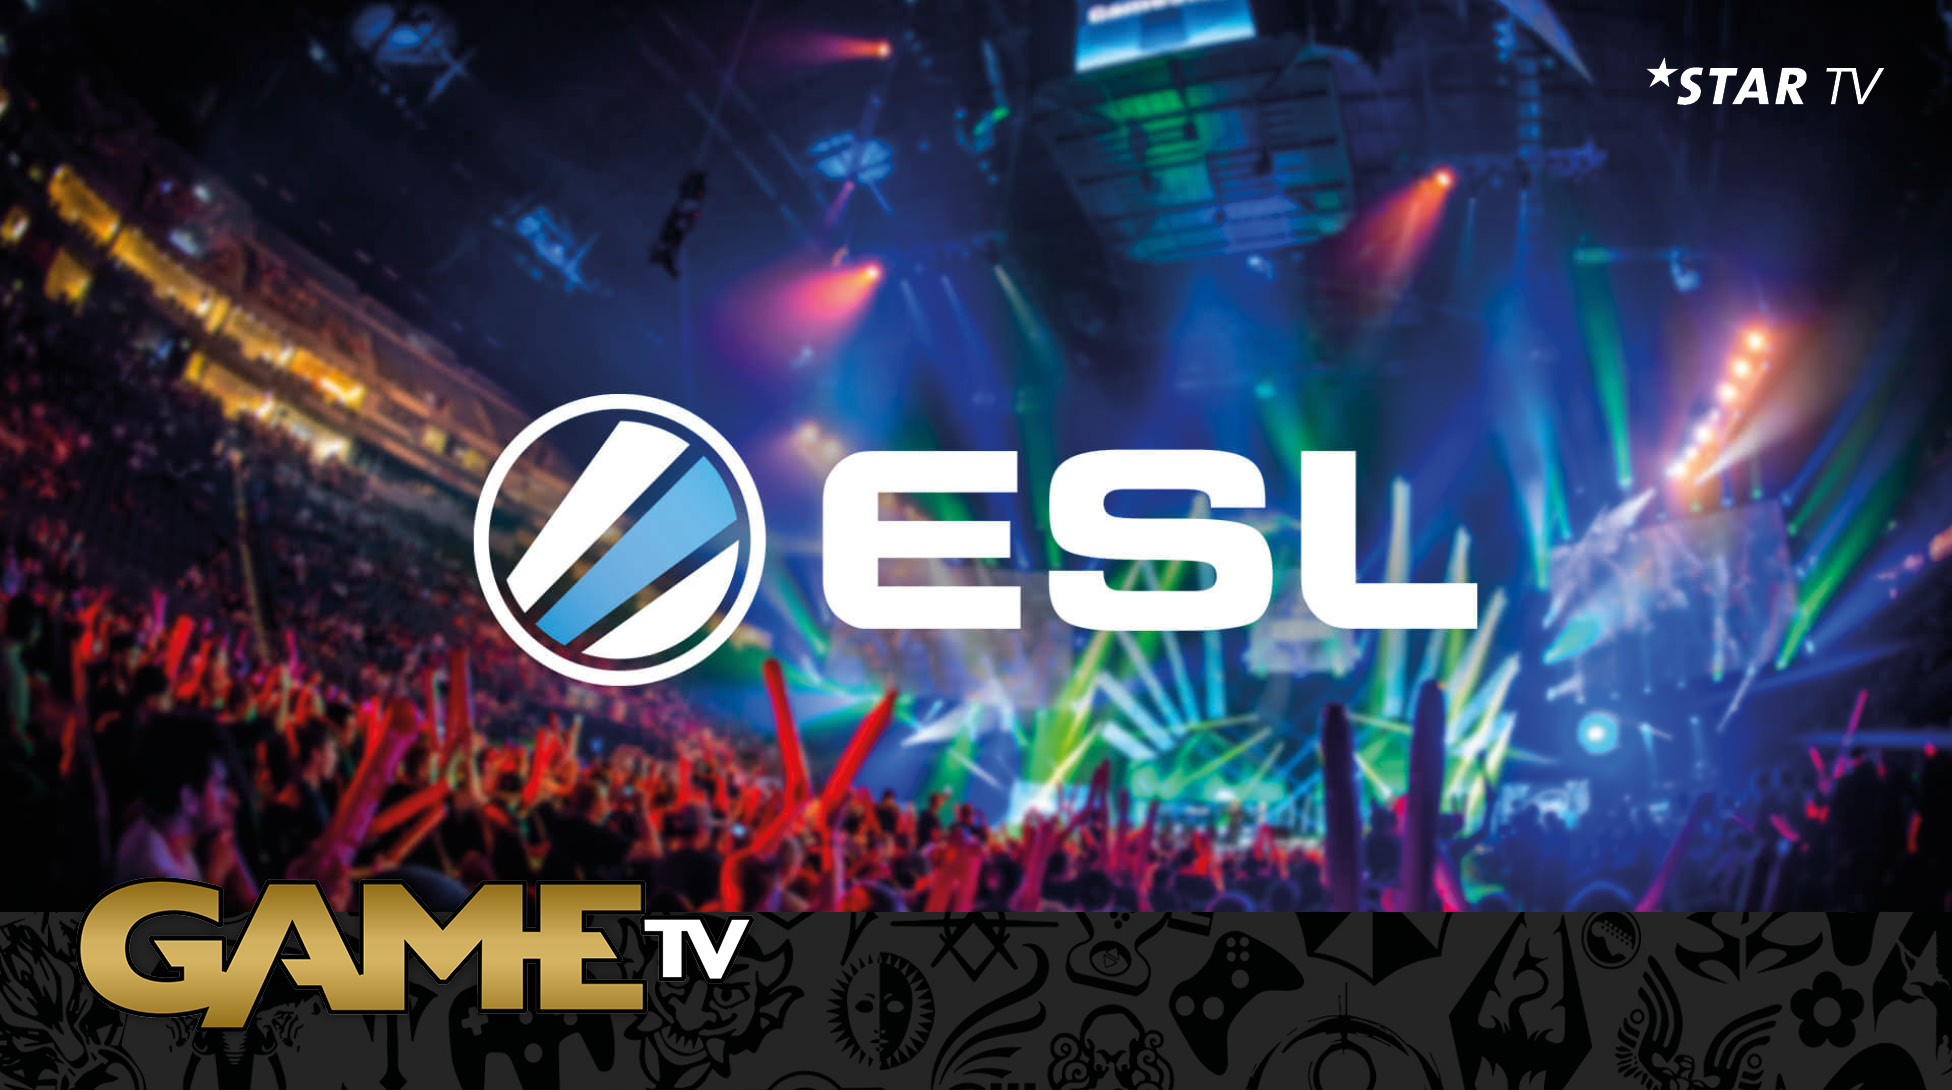 Game TV Schweiz - ESL - ESPORTS PROMOTION VIDEO